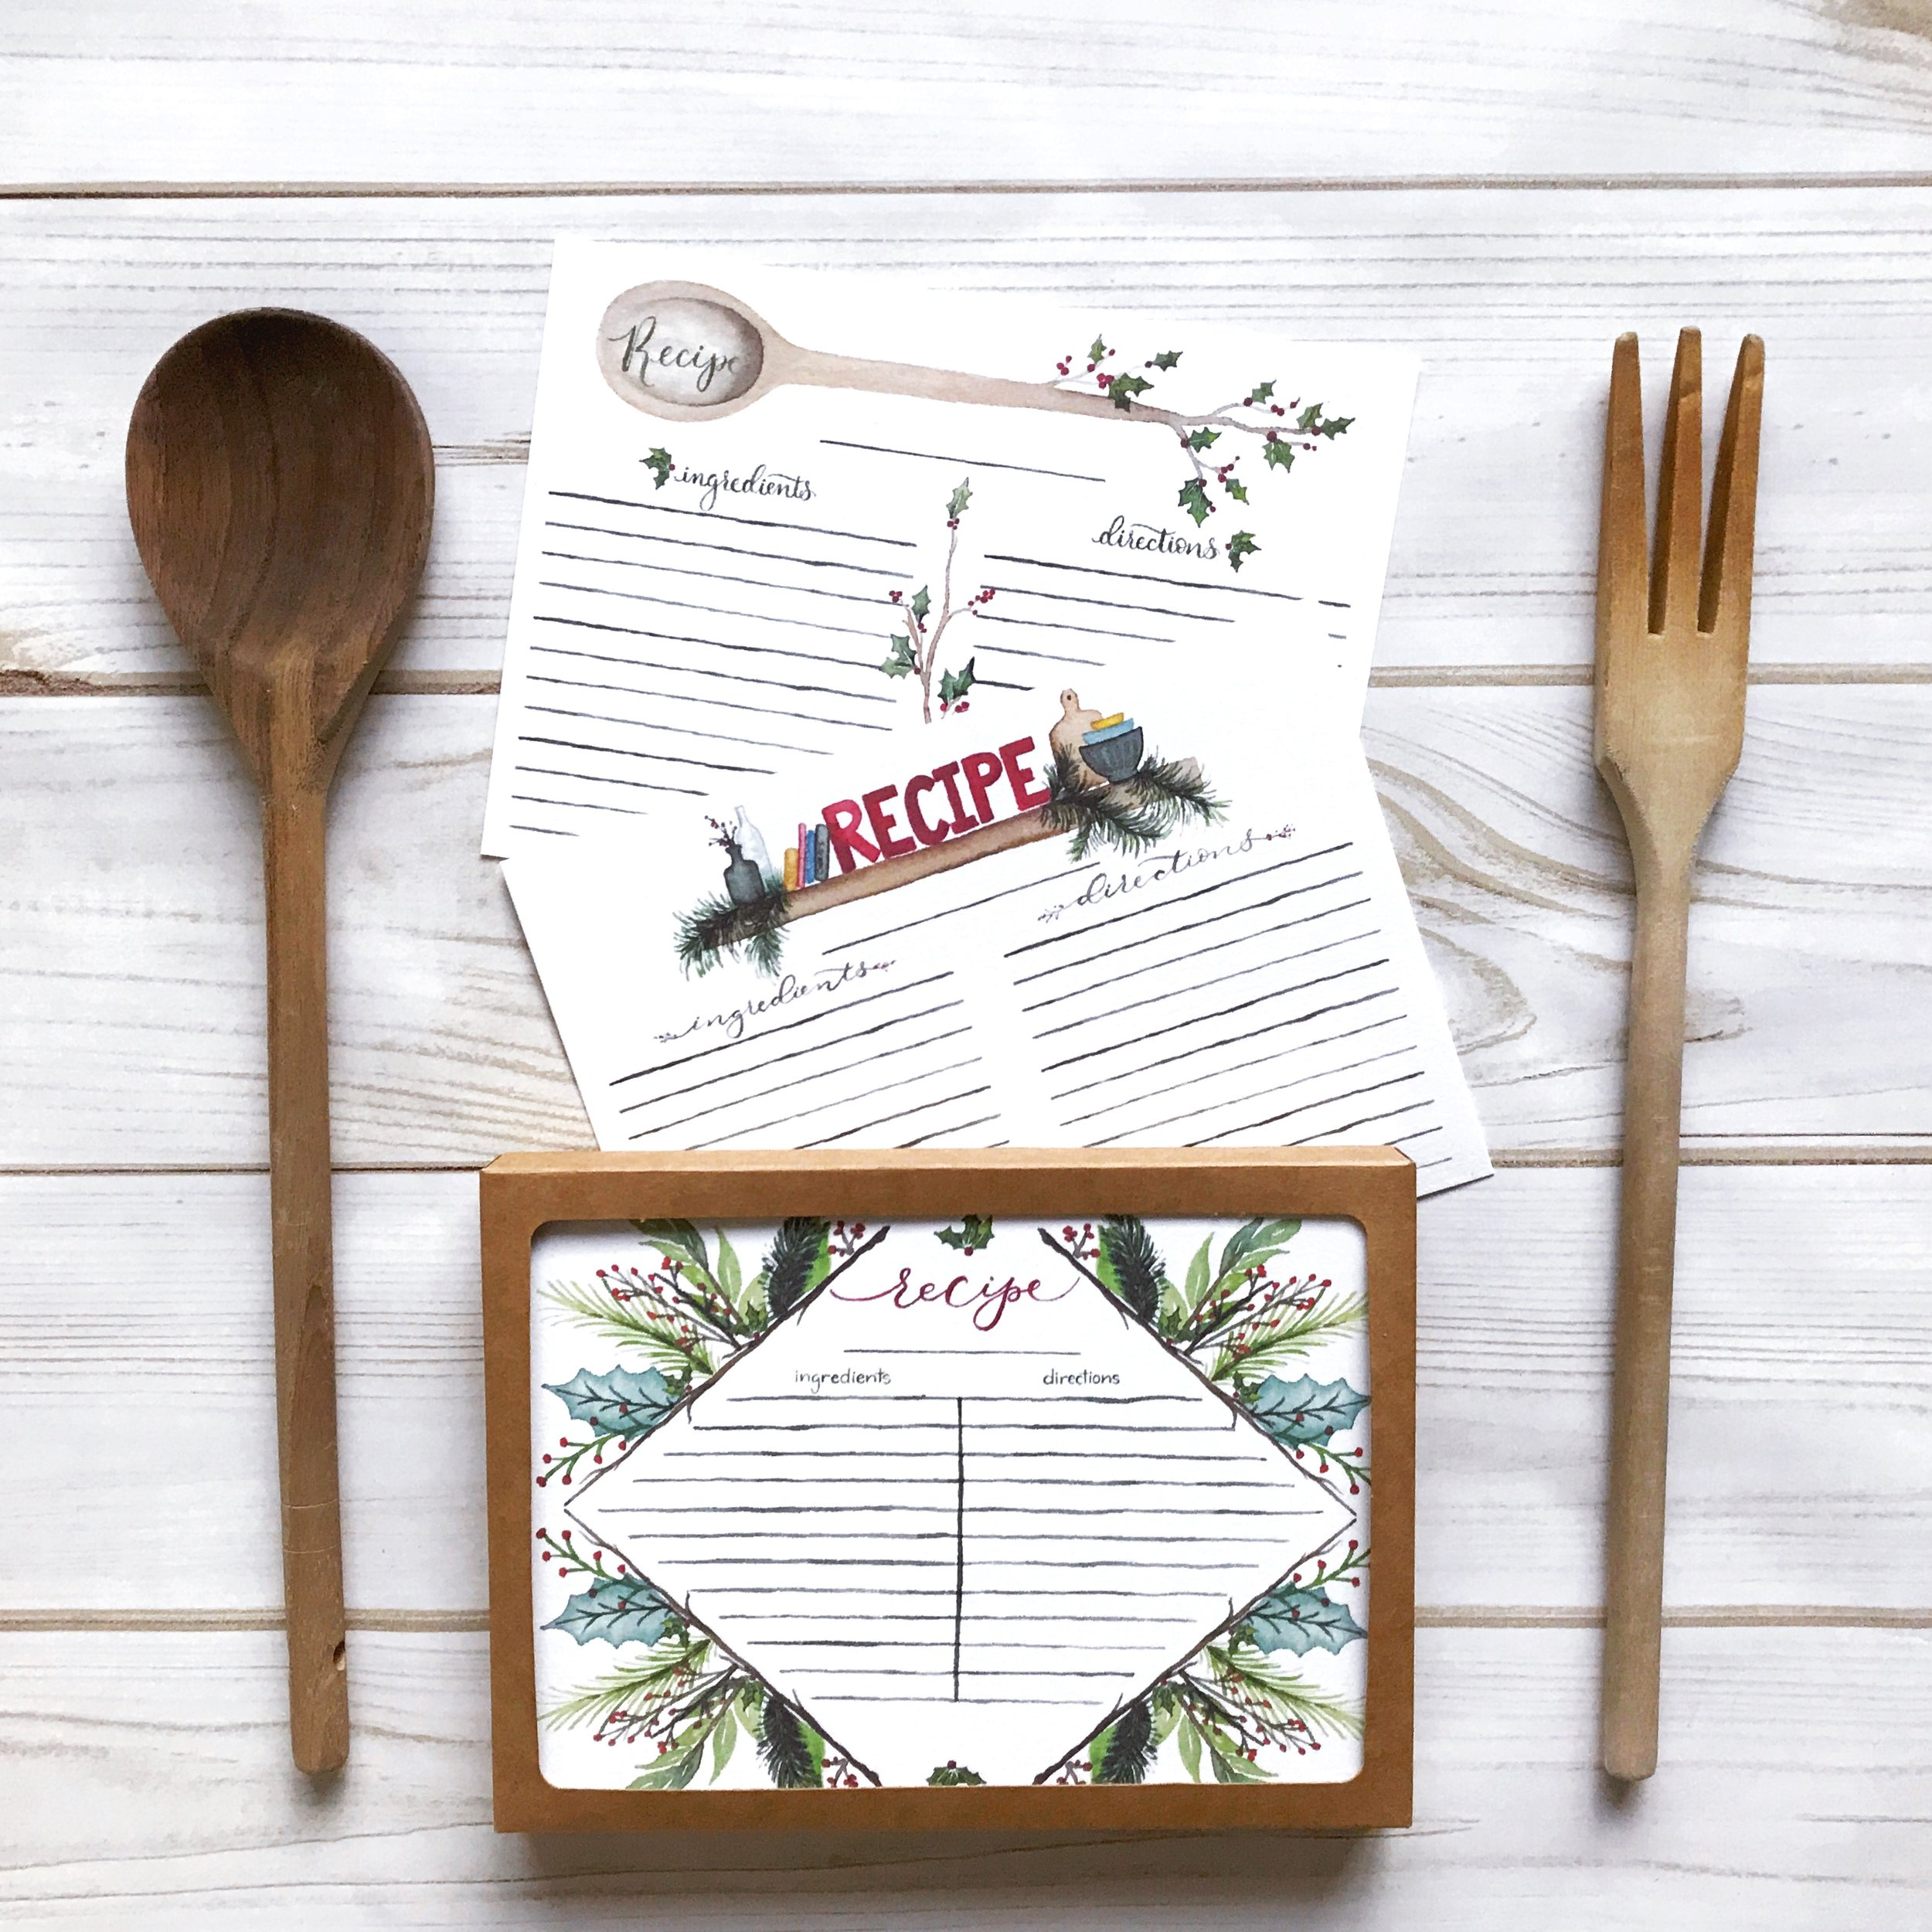 """""""gorgeous designs!"""" - These holiday recipe cards are so beautiful from the packaging to the actual cards. The paper is nice and sturdy with gorgeous designs. Can't wait to write down some holiday recipes!— D.P."""